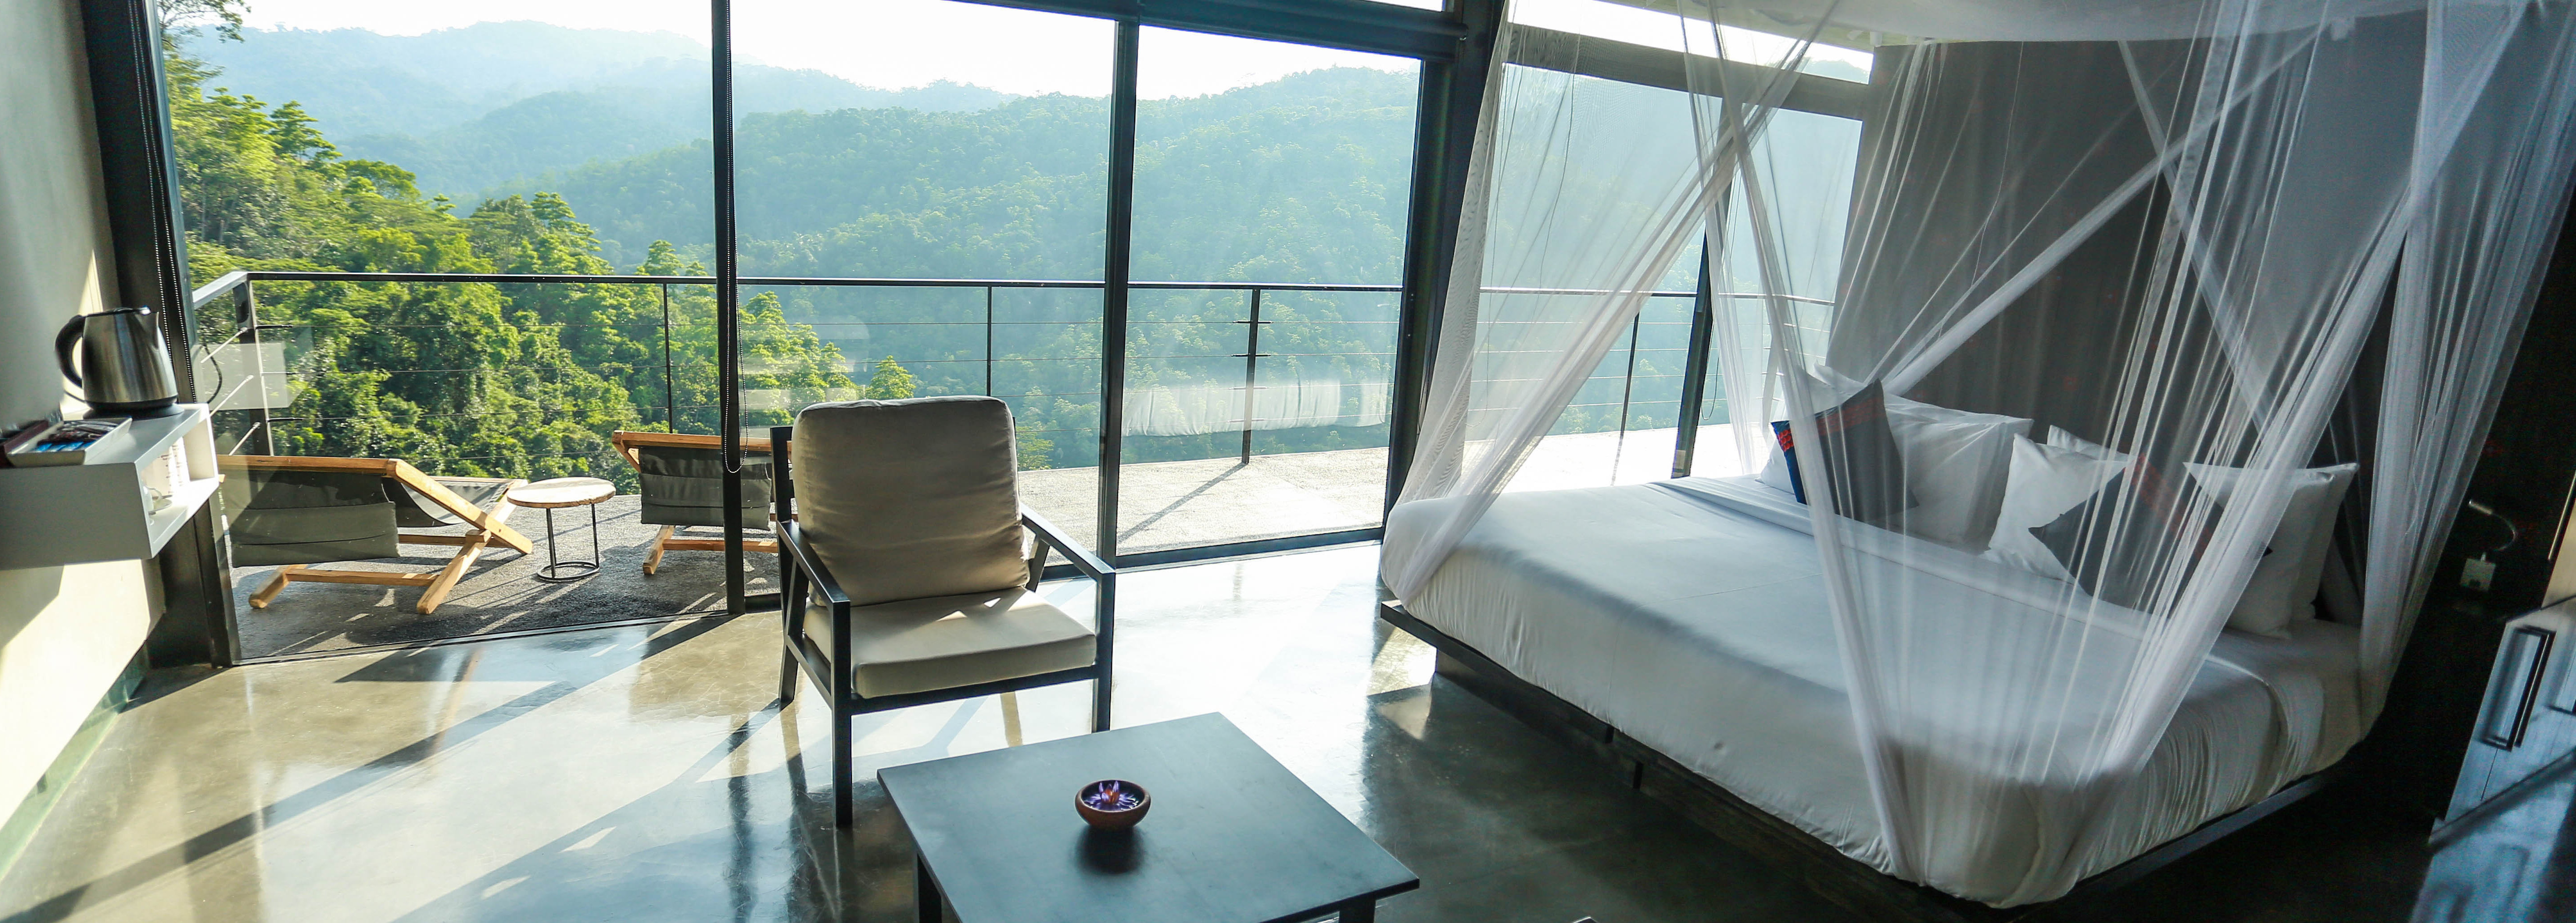 santani-mountain-view-bedroom